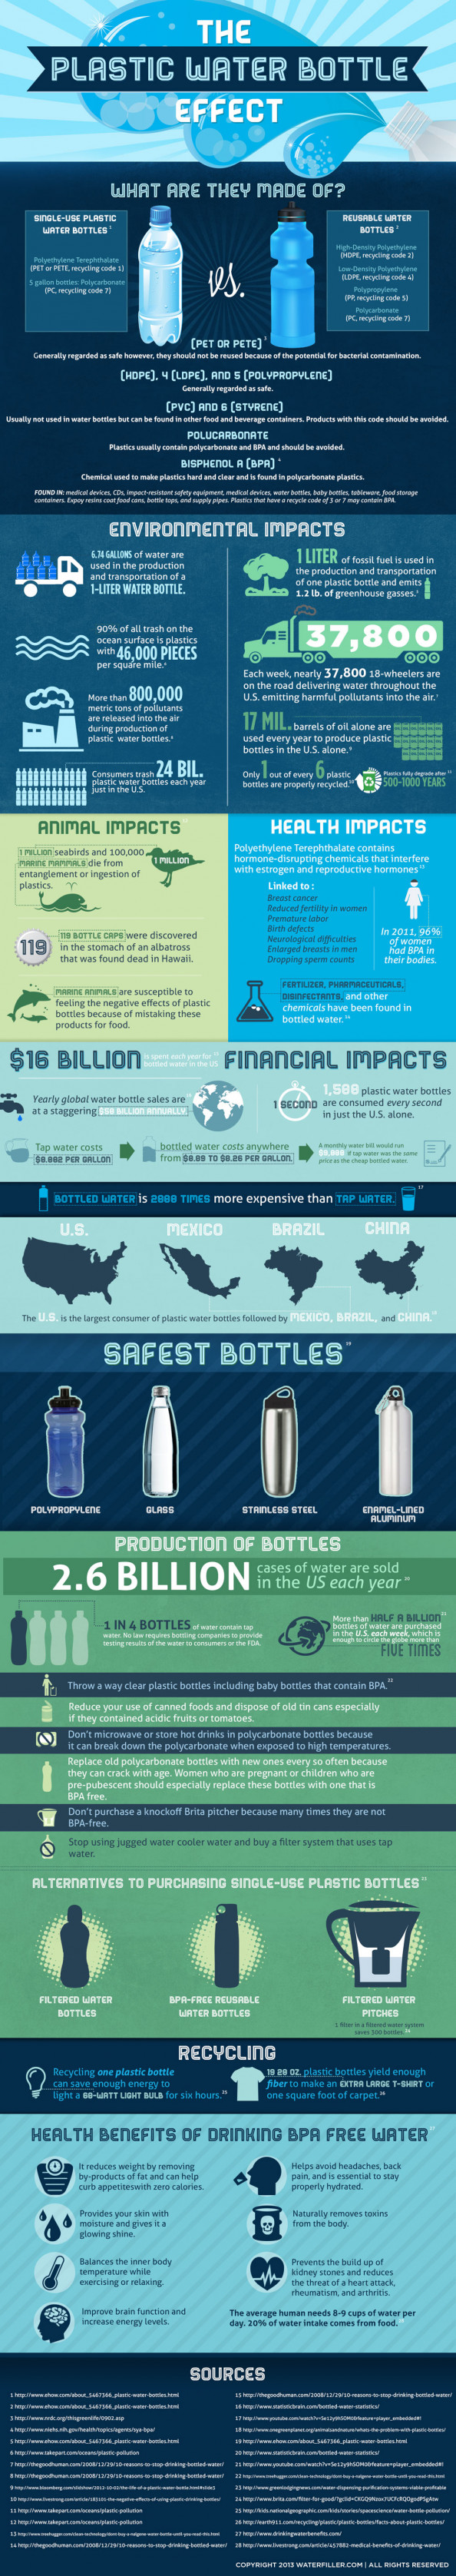 environmental effects of bottled water essay Bans — like other forms of command and control — are inefficient (and perhaps even a slight on human rights) better to price bottled water in line with its impact on the environment (bottle deposits, for example), while ensuring that sources are tapped sustainably.